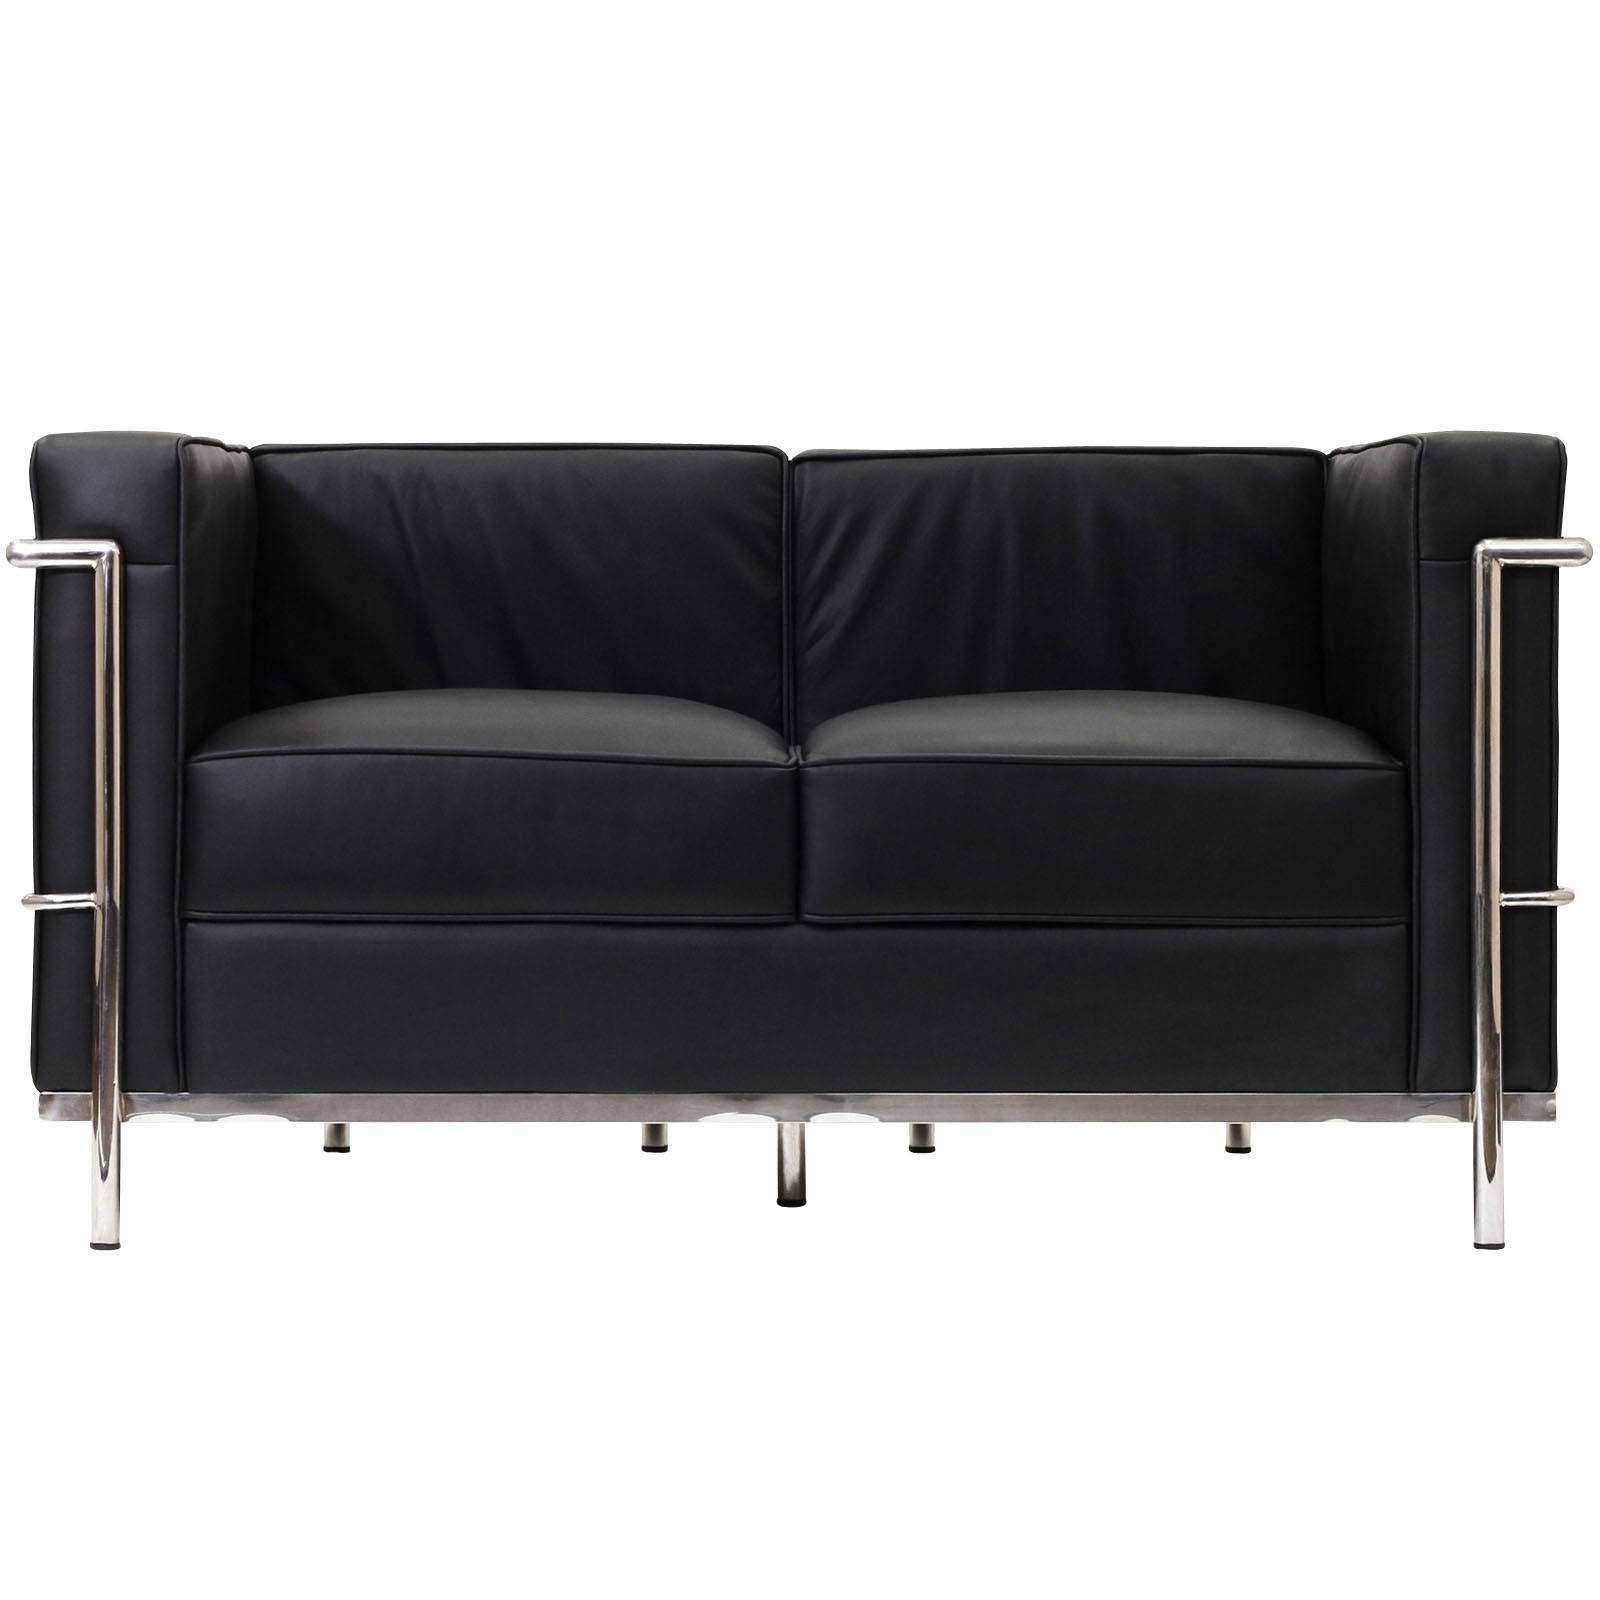 le corbusier style lc2 loveseat couch black leather. Black Bedroom Furniture Sets. Home Design Ideas